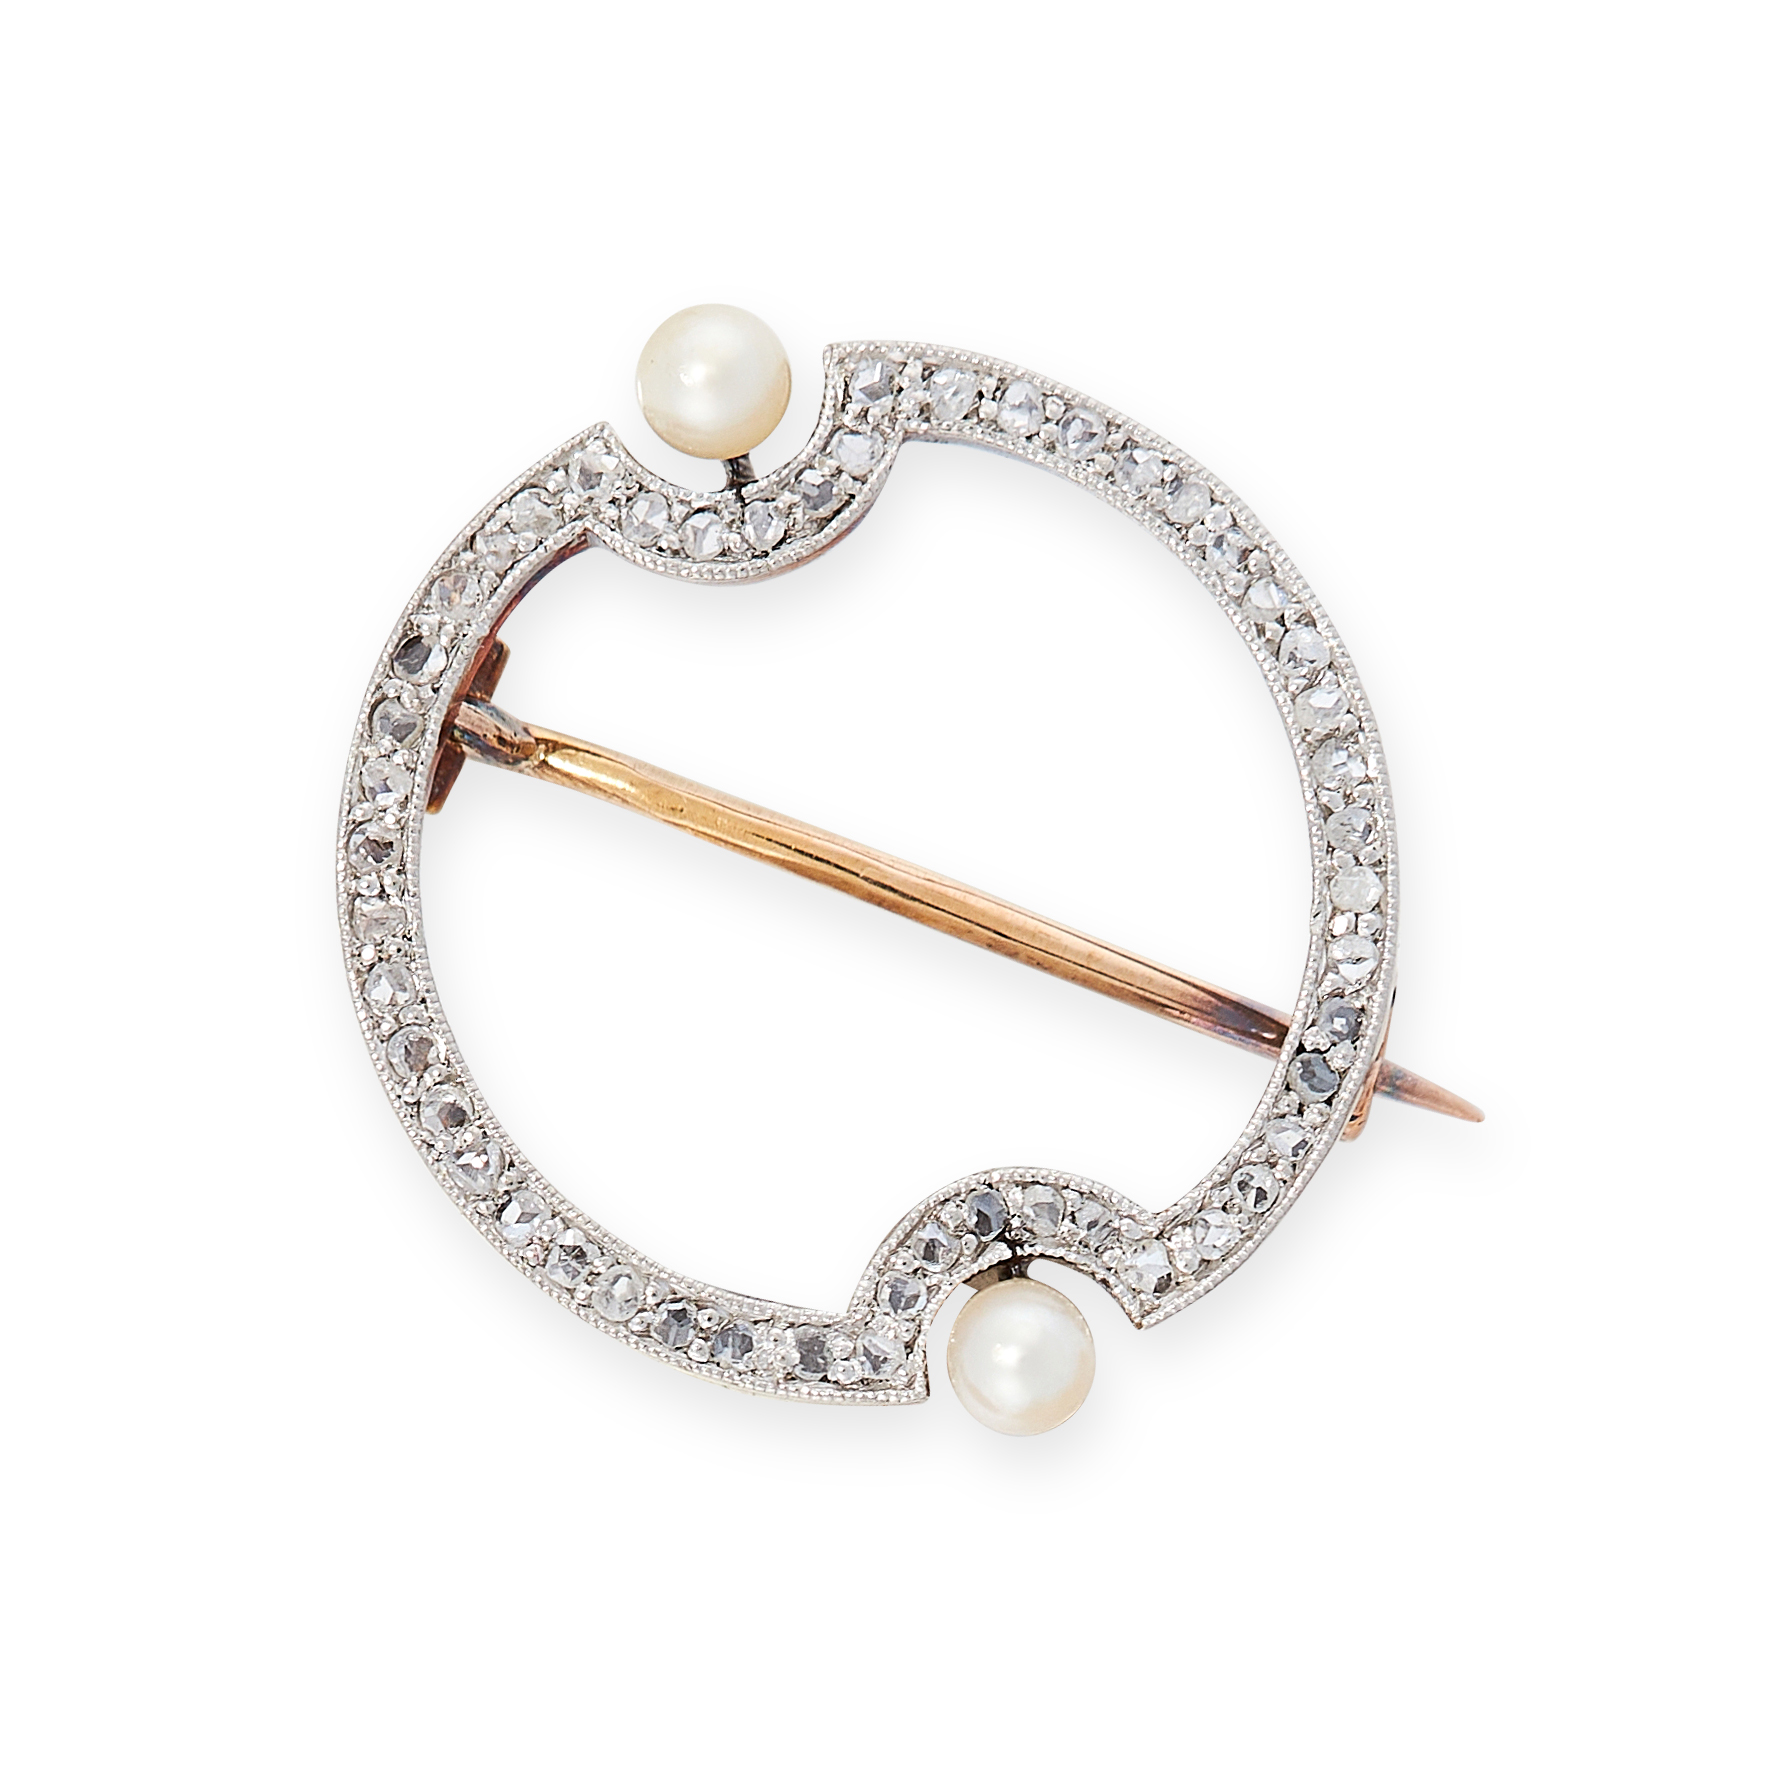 AN ANTIQUE DIAMOND AND PEARL BROOCH, EARLY 20TH CENTURY in 18ct yellow gold, the circular body set